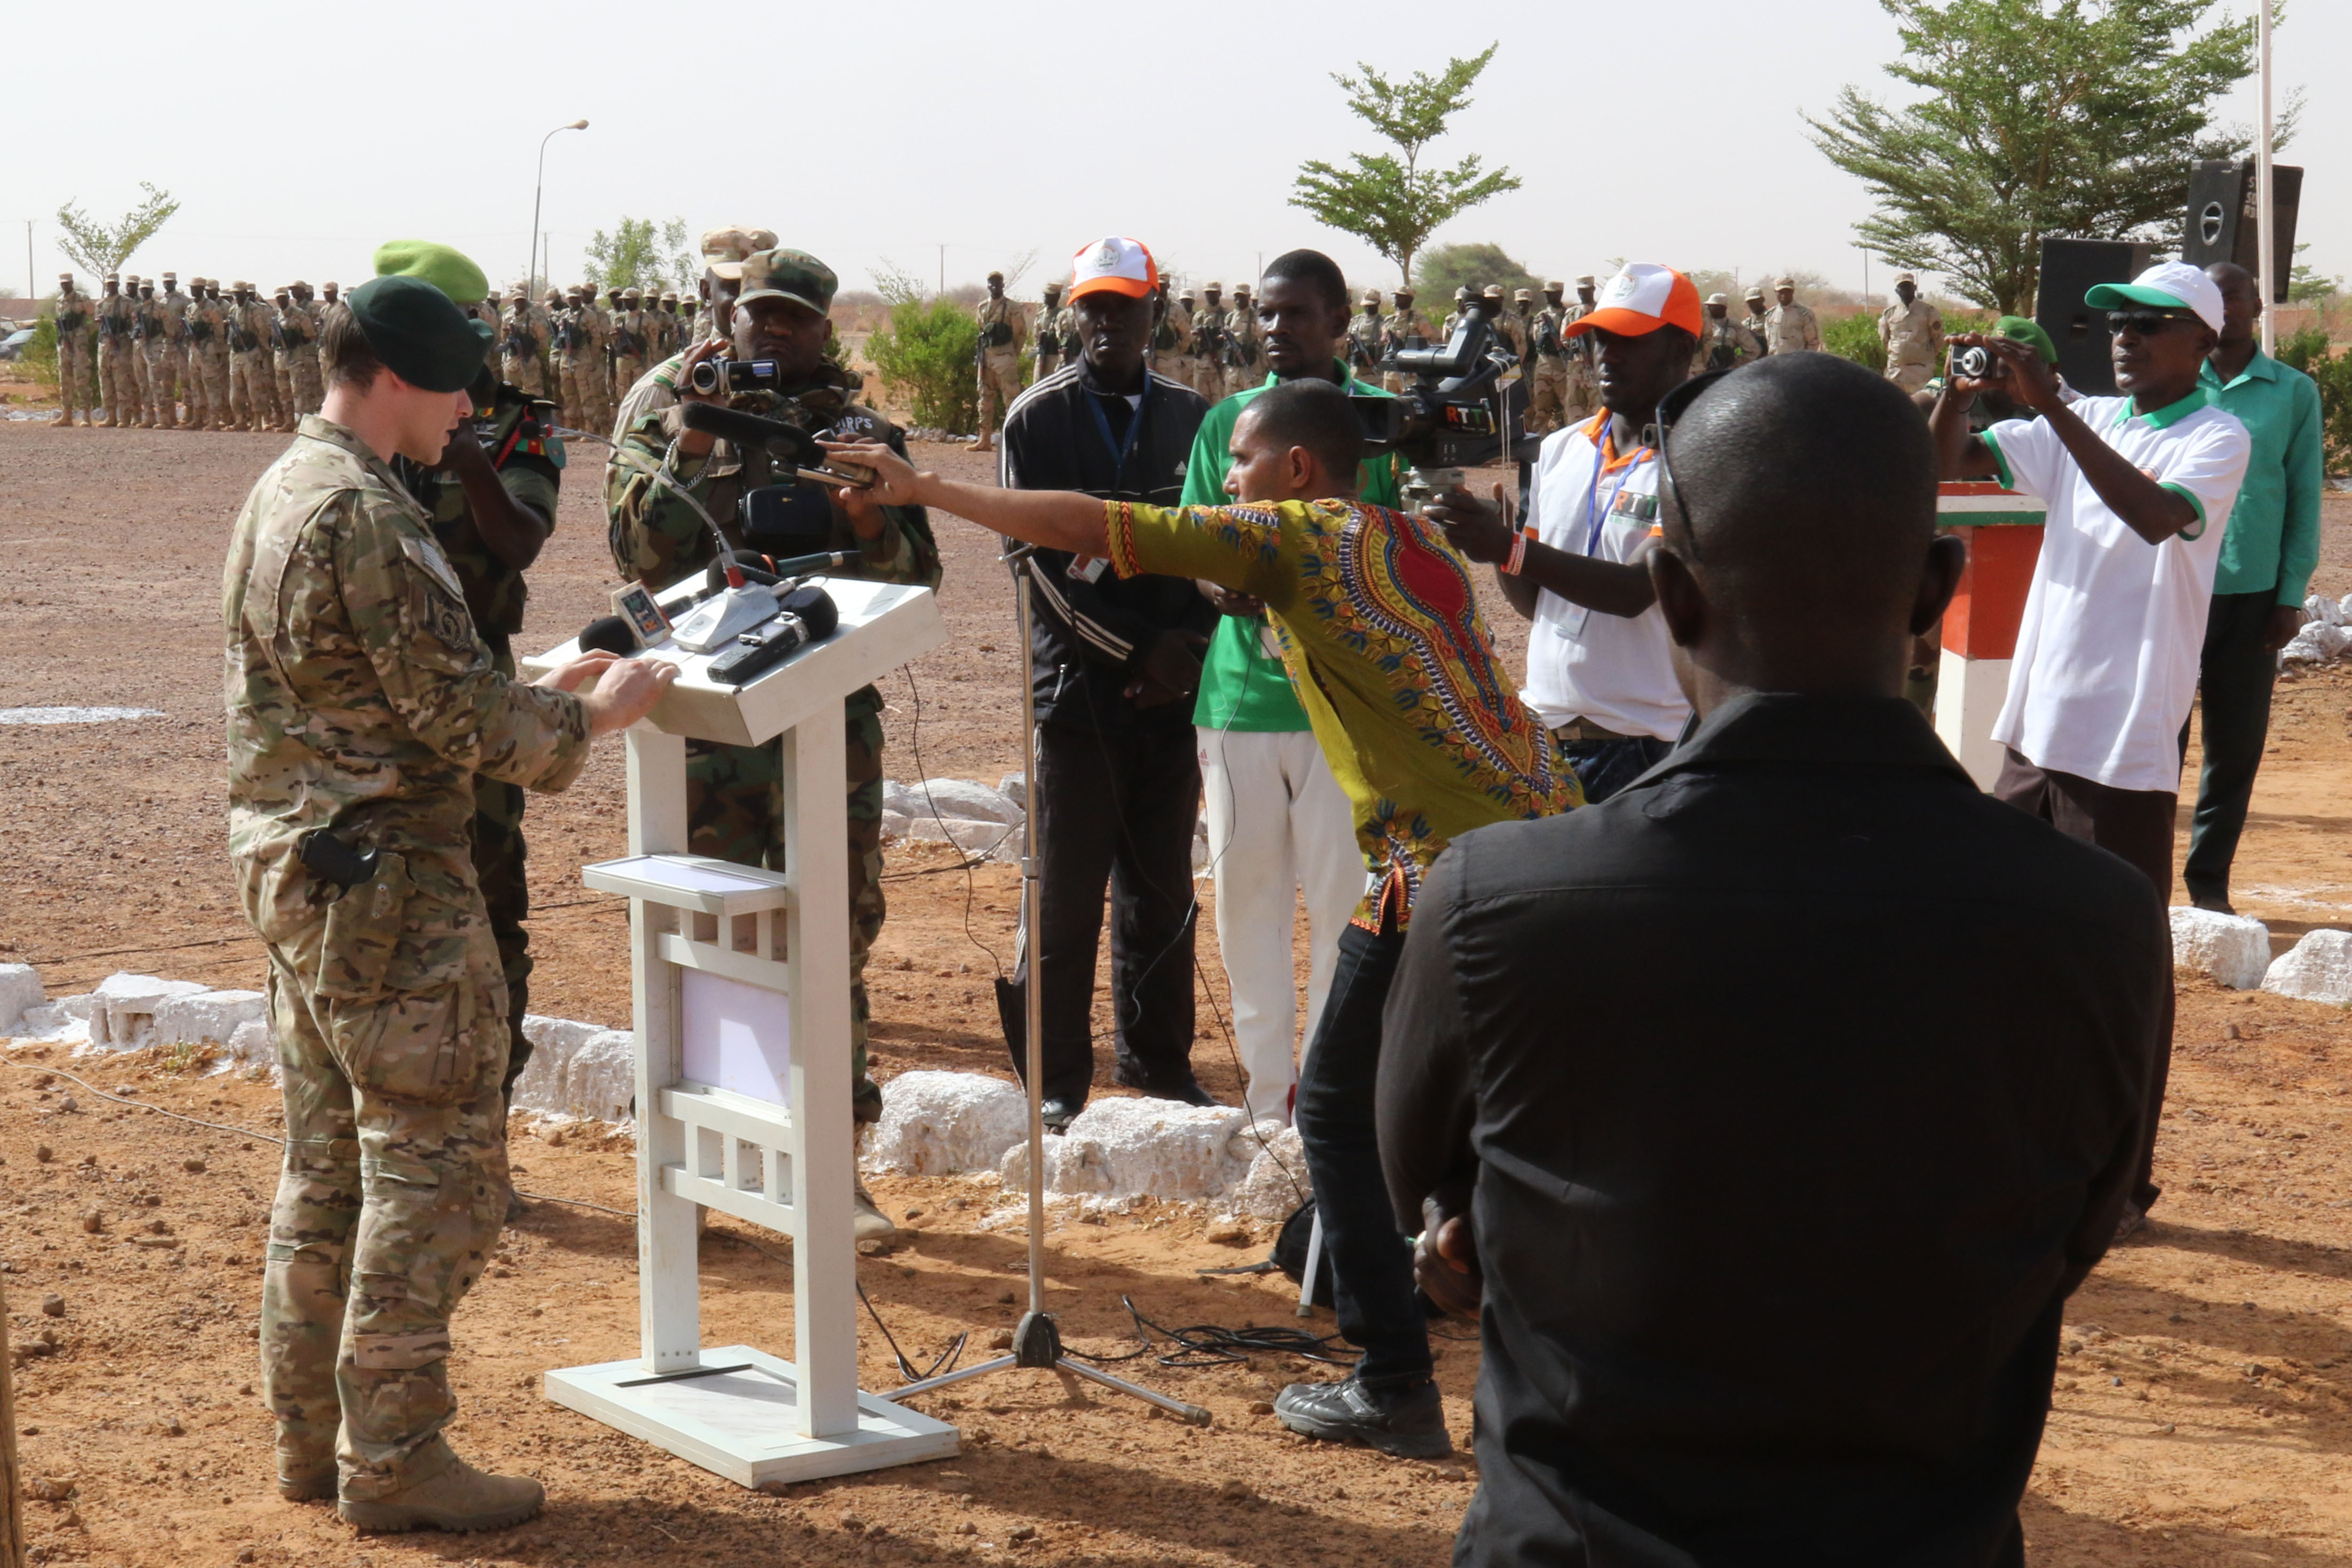 TAHOUA, Niger - Capt. Neal a U.S. Army Special Forces Operational Detachment – Alpha Commander in 3rd Special Forces Group (Airborne), addresses dignitaries during the Tahoua opening ceremony of Flintlock 2018 April 11, 2018. Flintlock 2018, hosted by Niger, with key outstations at Burkina Faso and Senegal, is designed to strengthen the ability of key partner nations in the region to counter violent extremist organizations, protect their borders, and provide security for their people. (U.S. Army photo by Staff Sgt. Kulani Lakanaria/RELEASED)